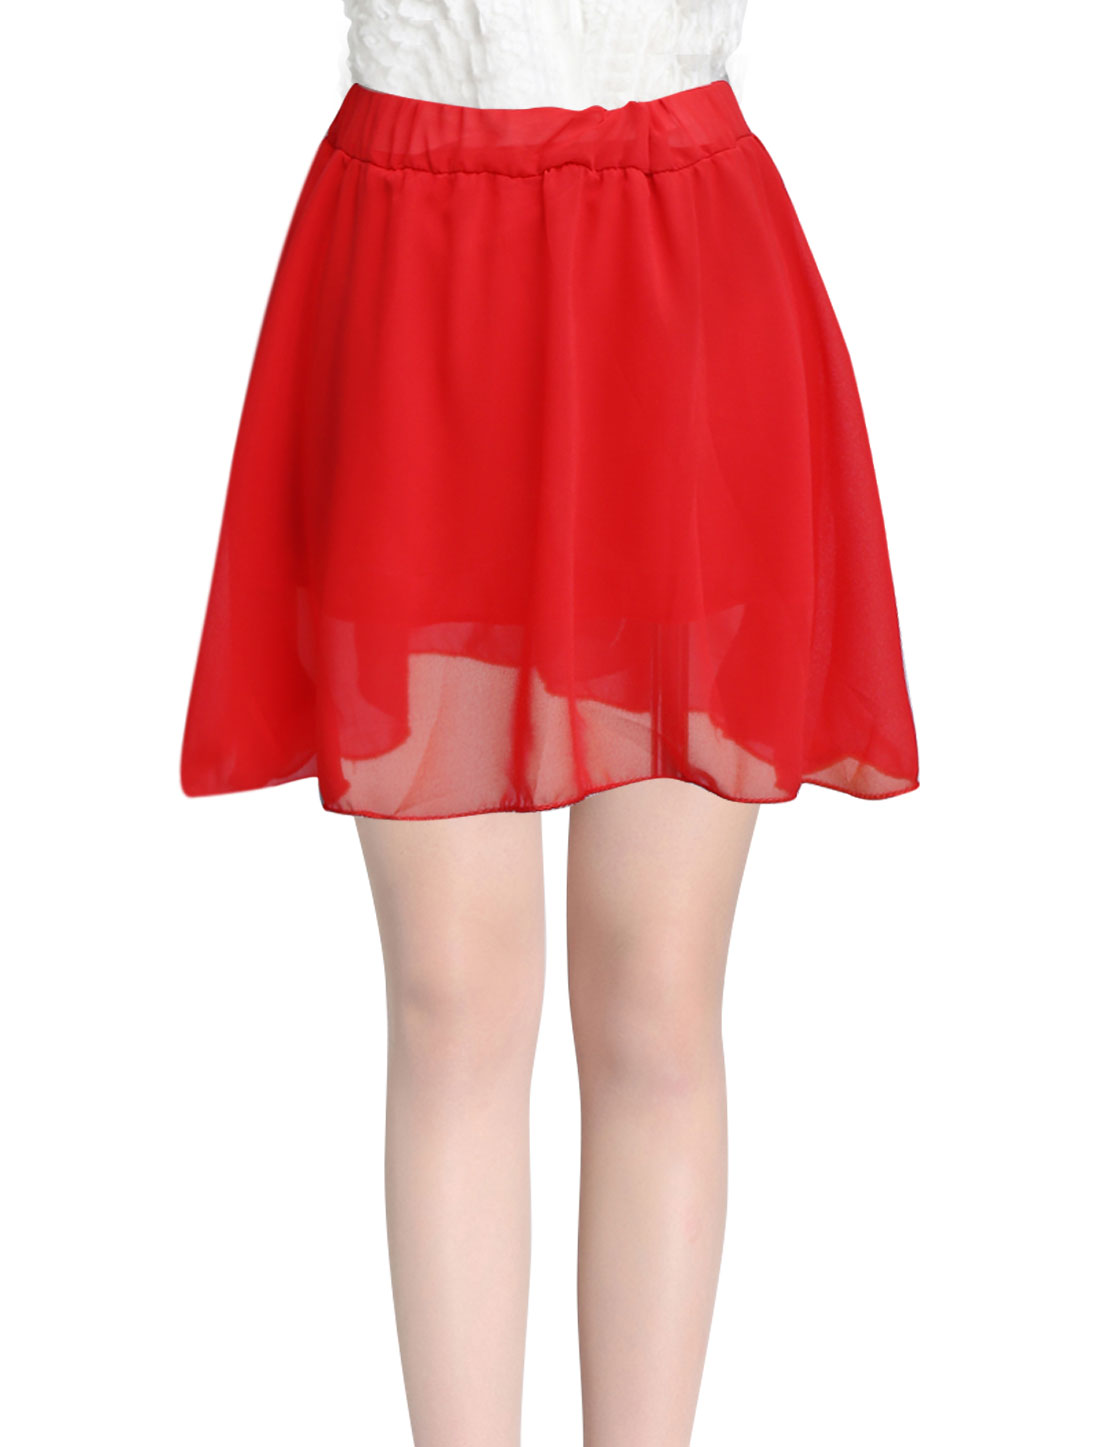 Lady Elastic Waist Ruffle Design Fully Lined Skirt Red XS